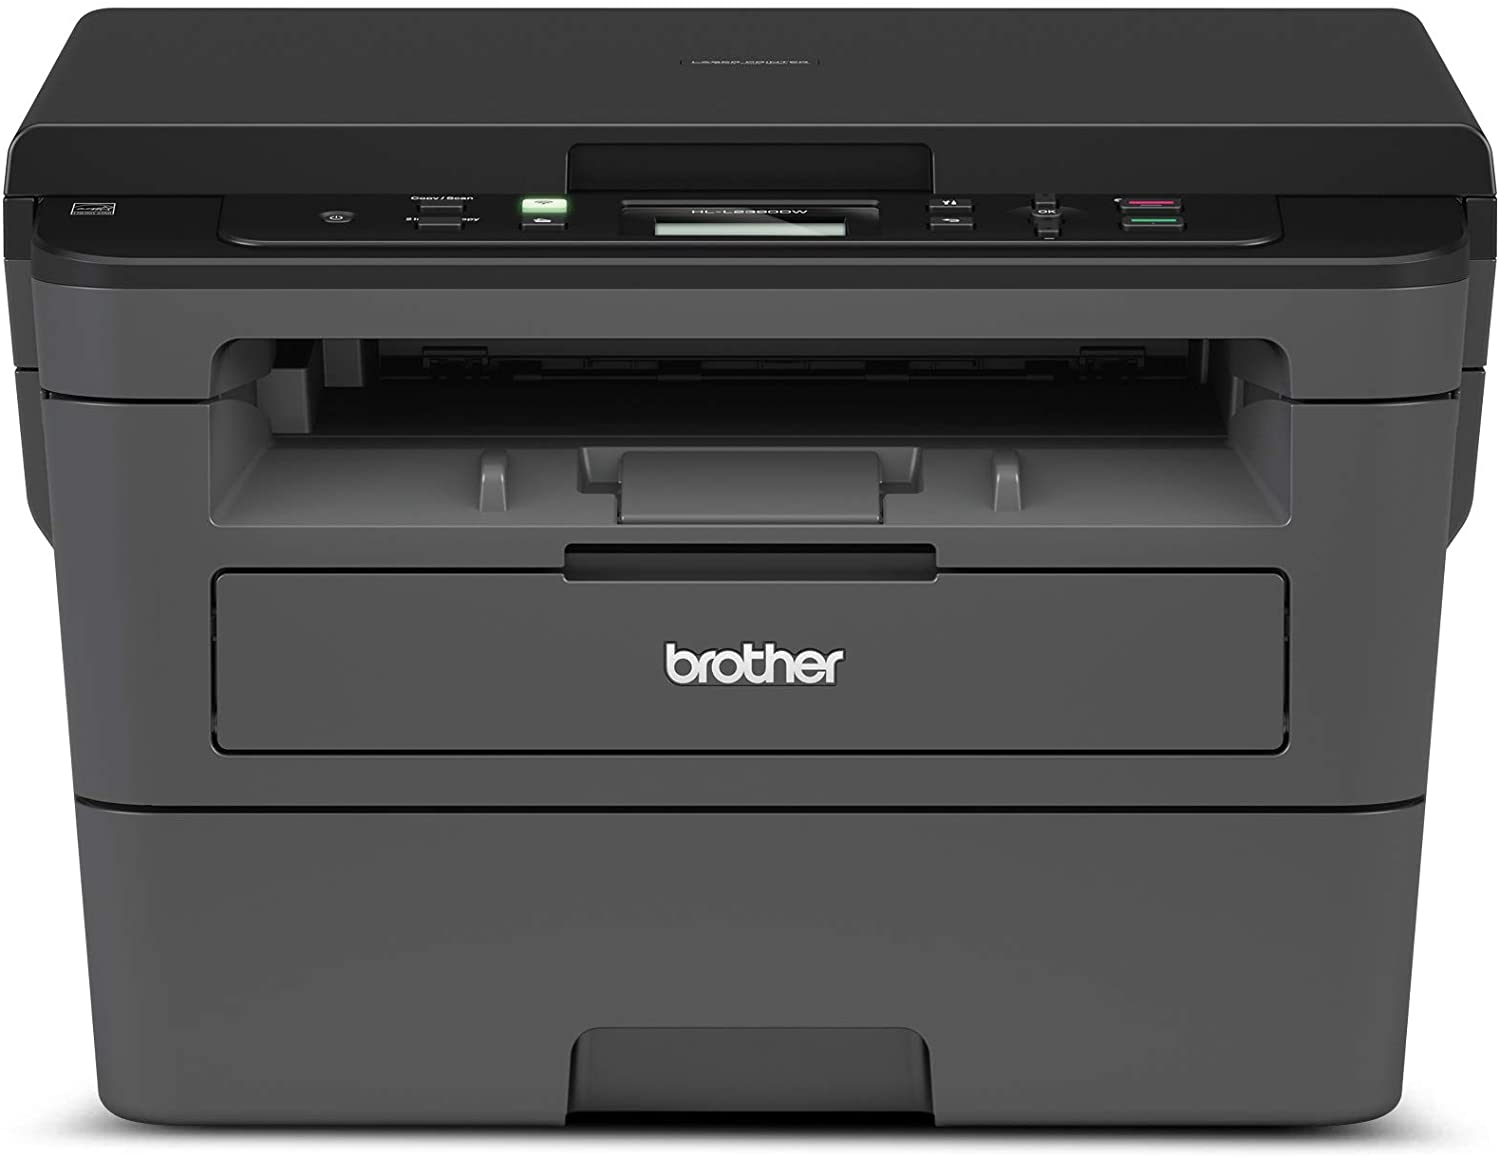 Brother Compact Monochrome Laser Printer, HLL2390DW, Convenient Flatbed Copy & Scan, Wireless Printing, Duplex Two-Sided Printing,  Dash Replenishment Ready: Electronics